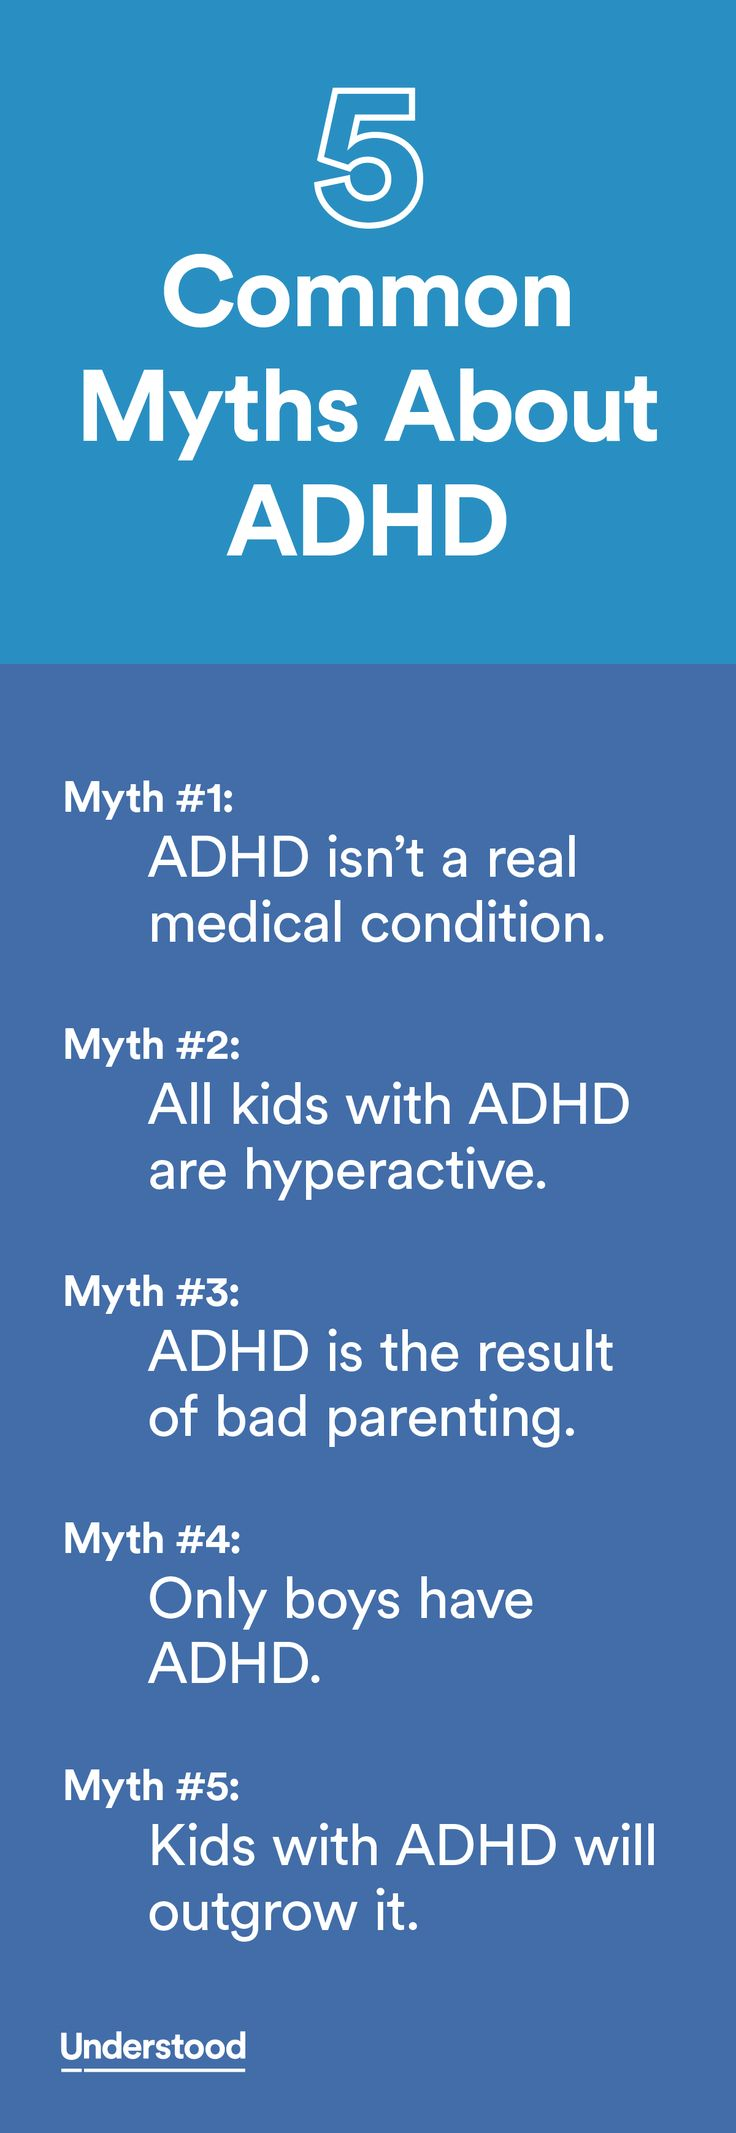 Adhd adult misconception